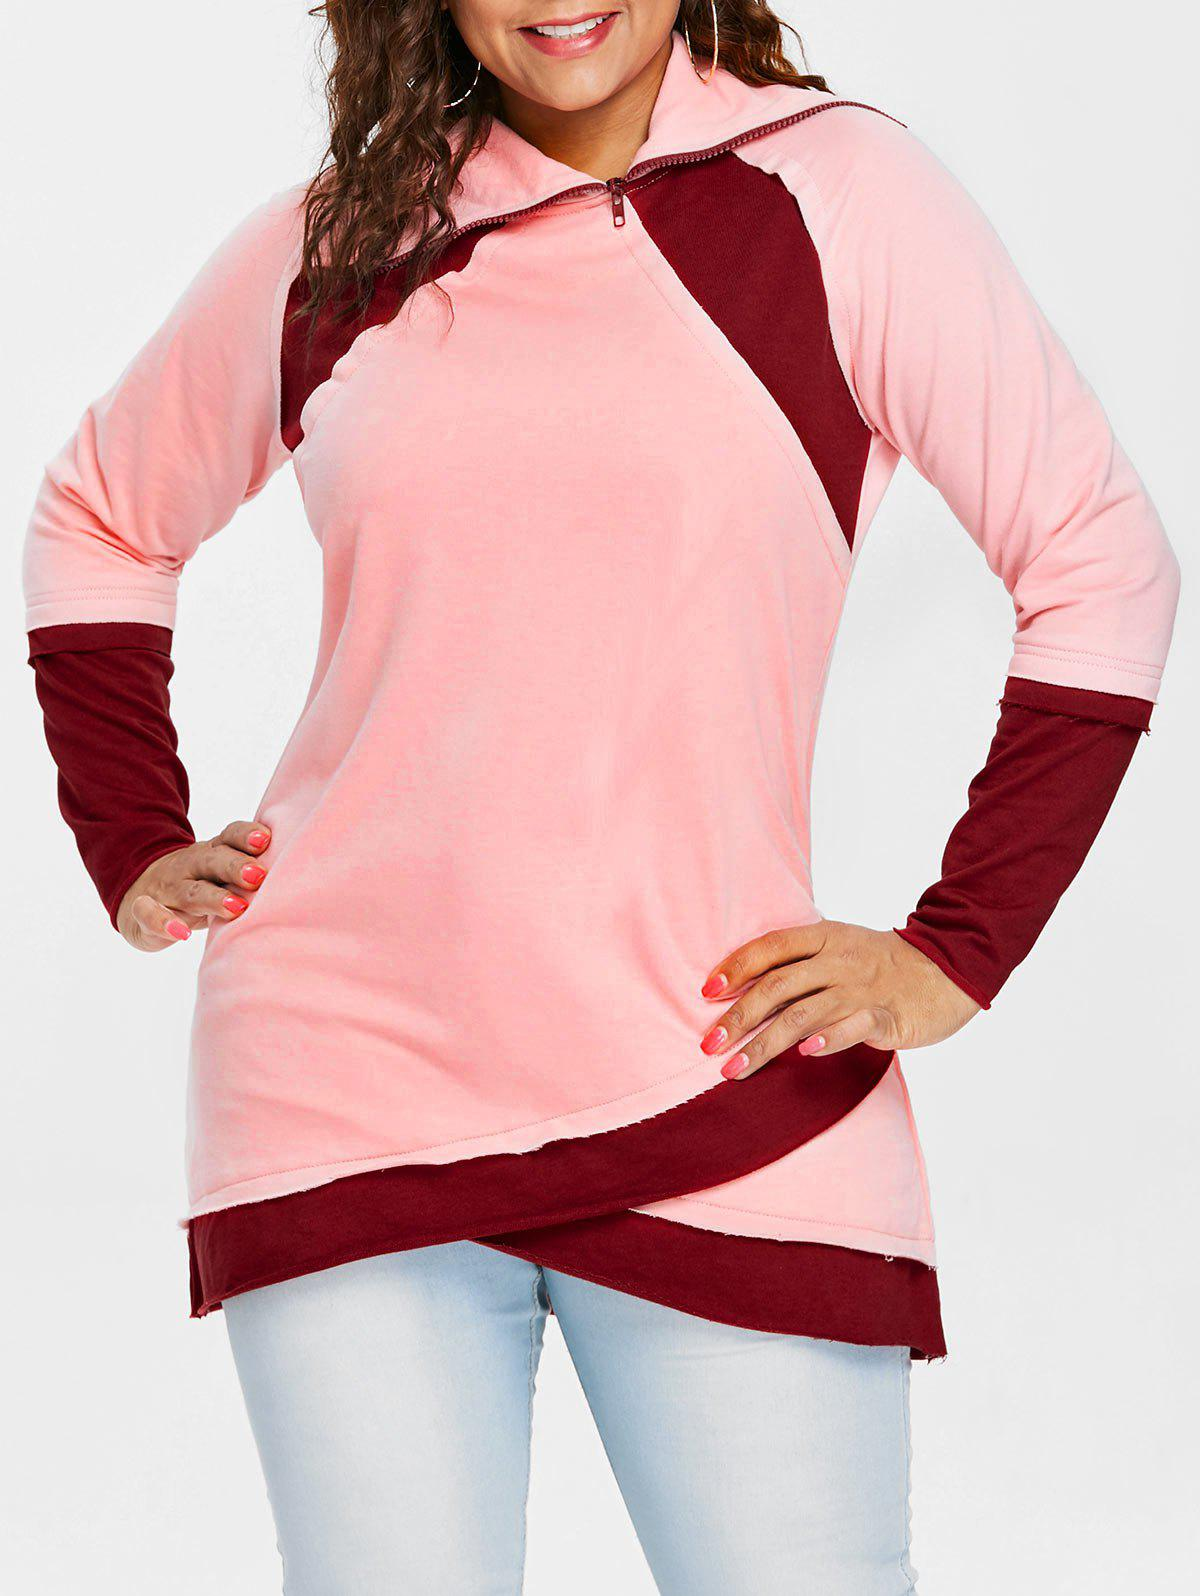 Sweat-Shirt en Blocs de Couleurs Fendu sur le Devant Grande-Taille